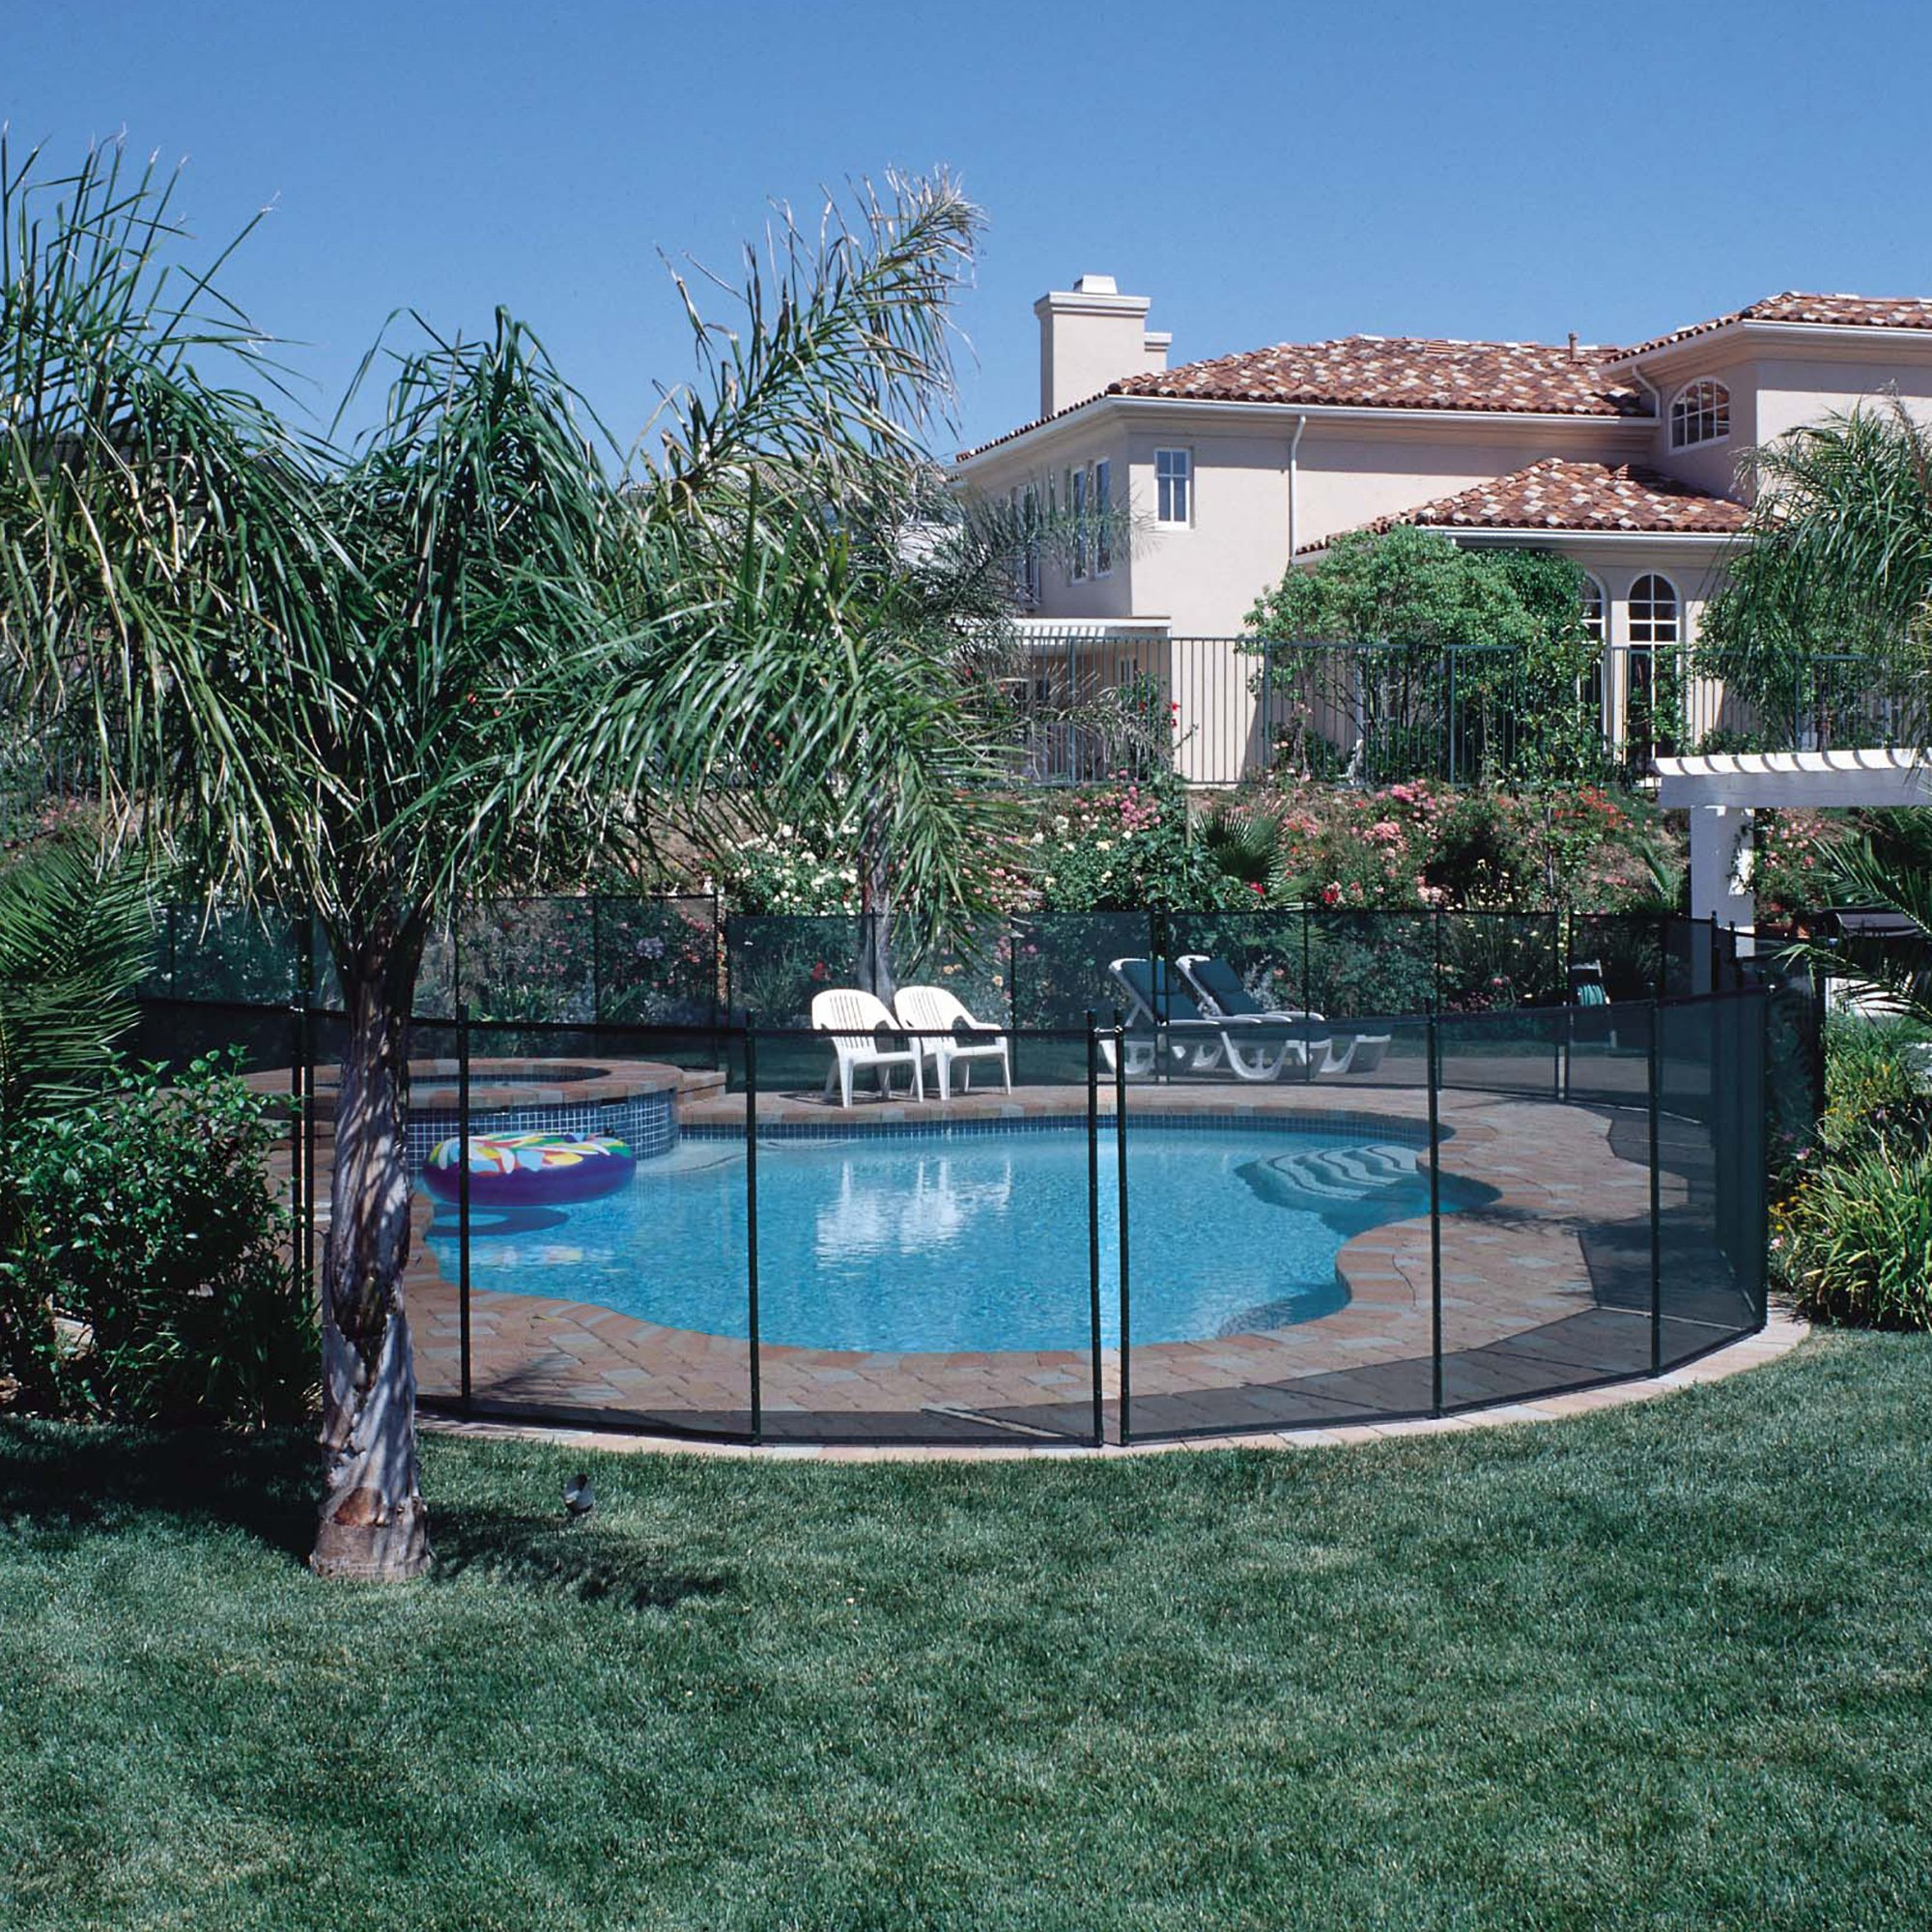 Outdoor Pool Safety Fence 4ftx12ft - Adams Pack